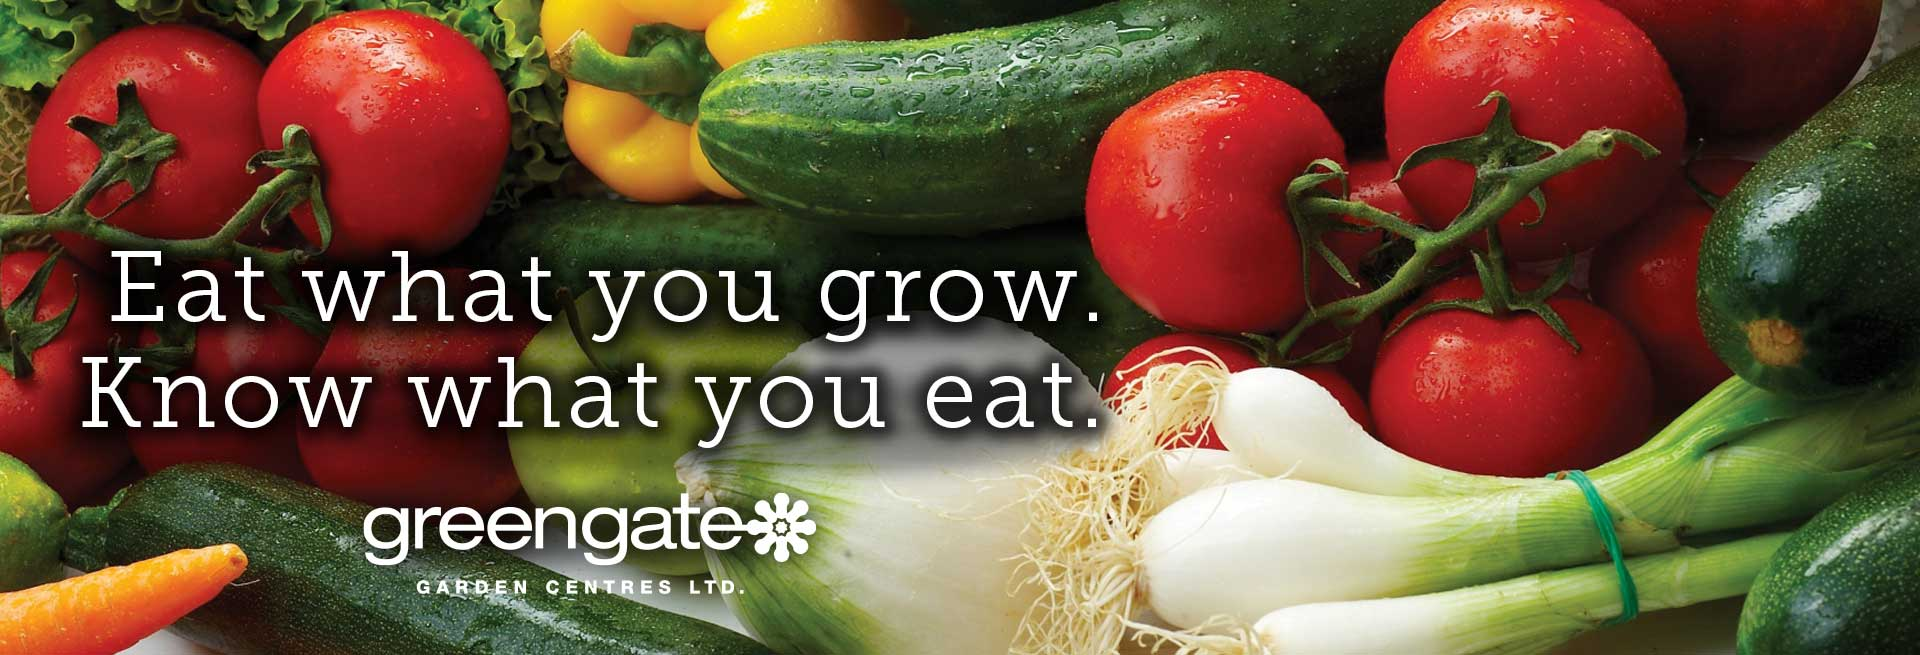 Eat what you grow